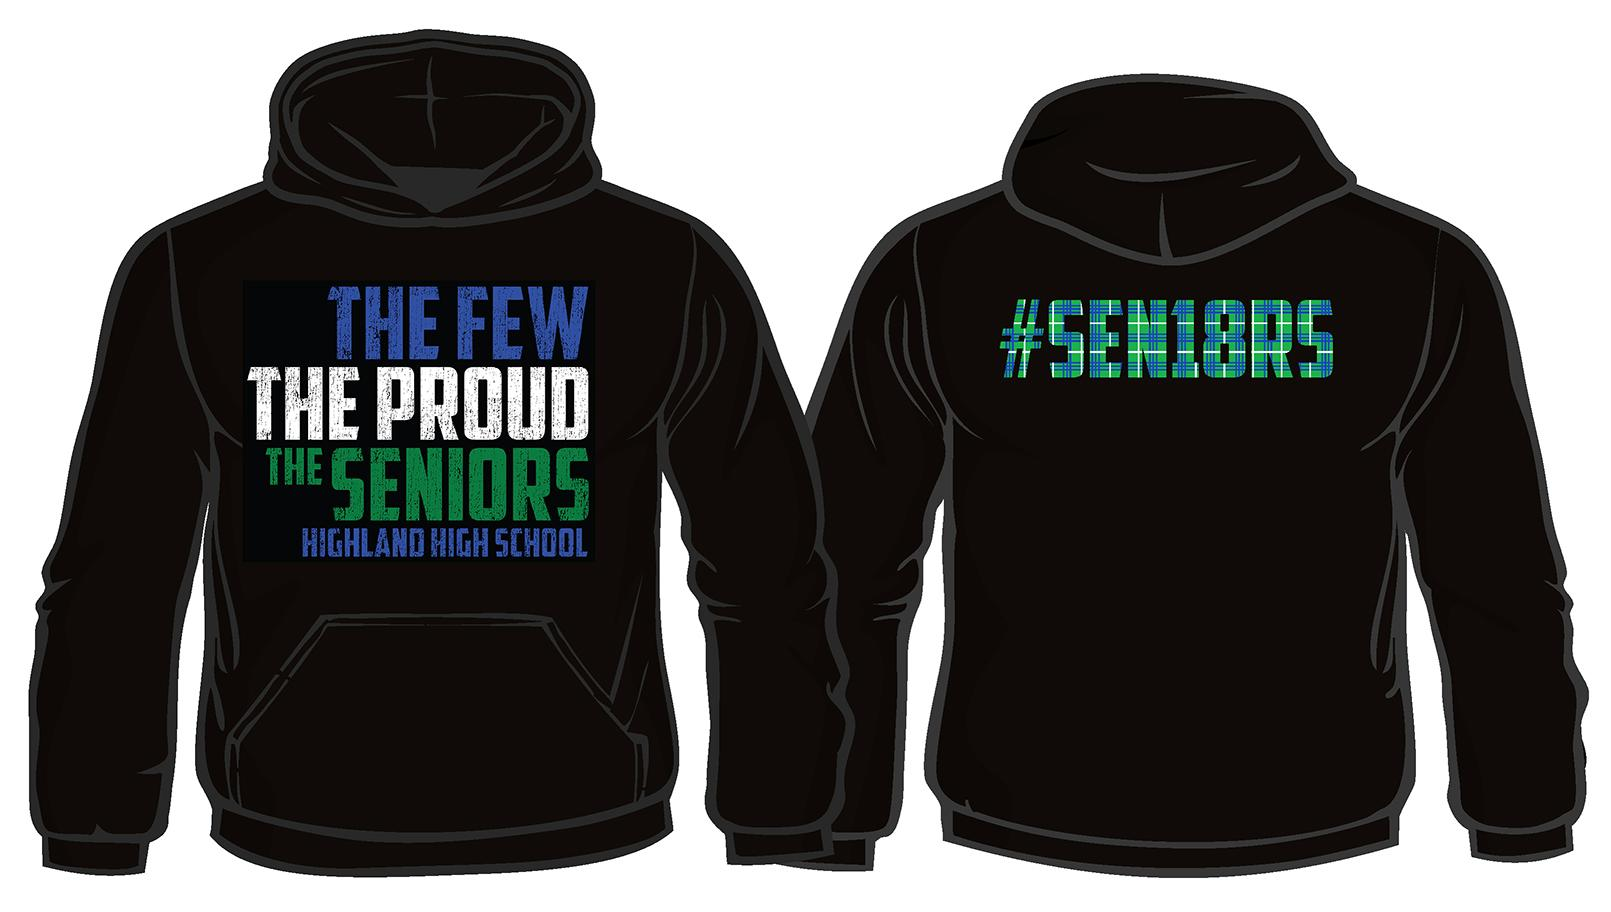 The front and back of the Seniors Sweatshirt.